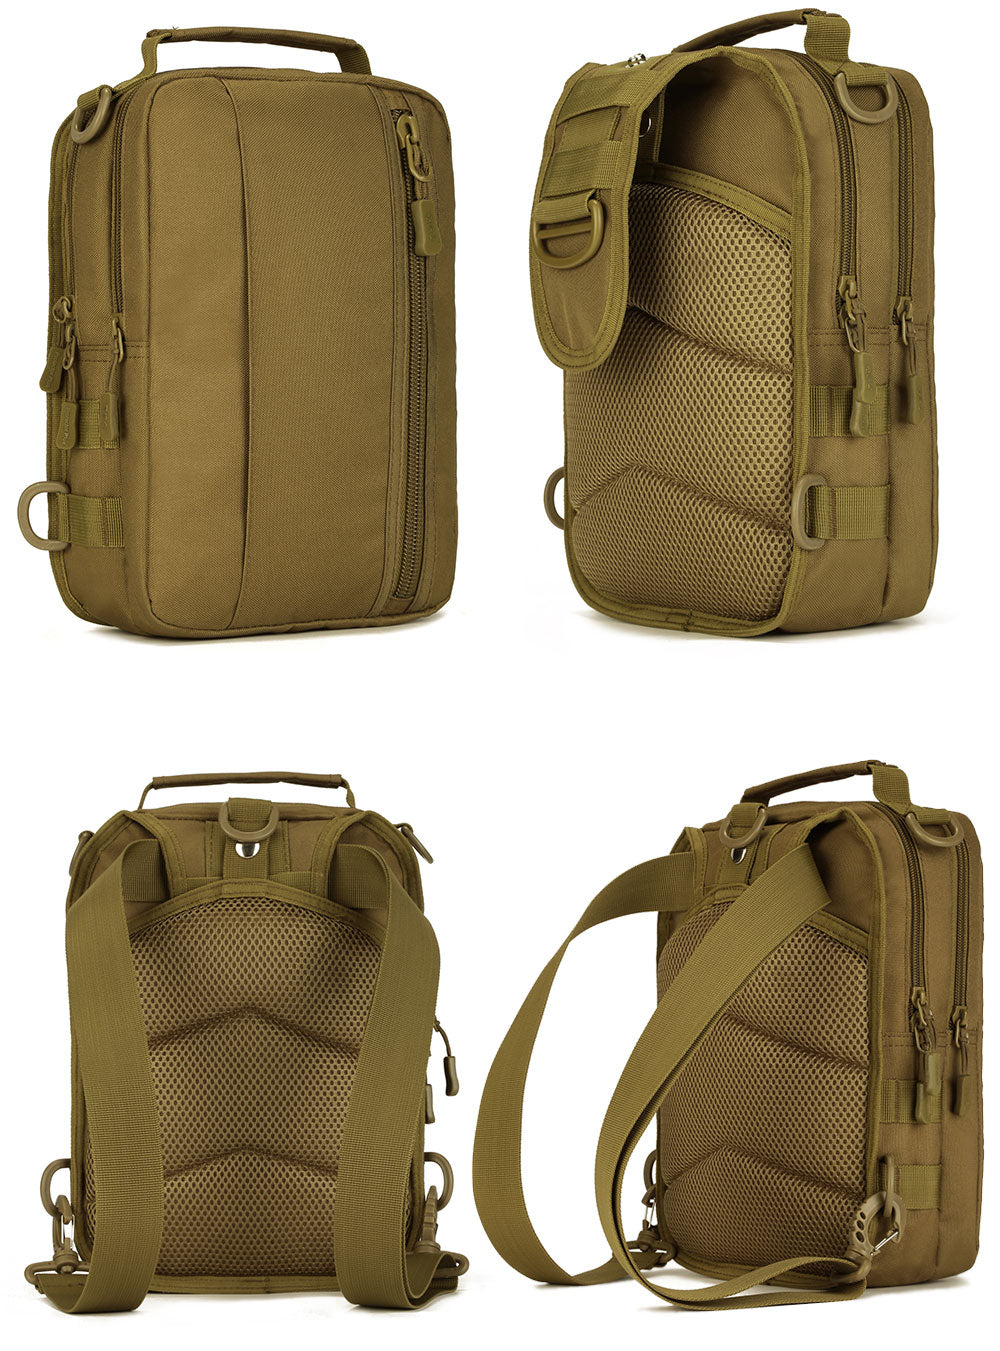 "Military Tactical Multi-Functional MOLLE Messenger Bag Backpack Crossbody Shoulder Bag Handbag Fits 10"" Tablet"